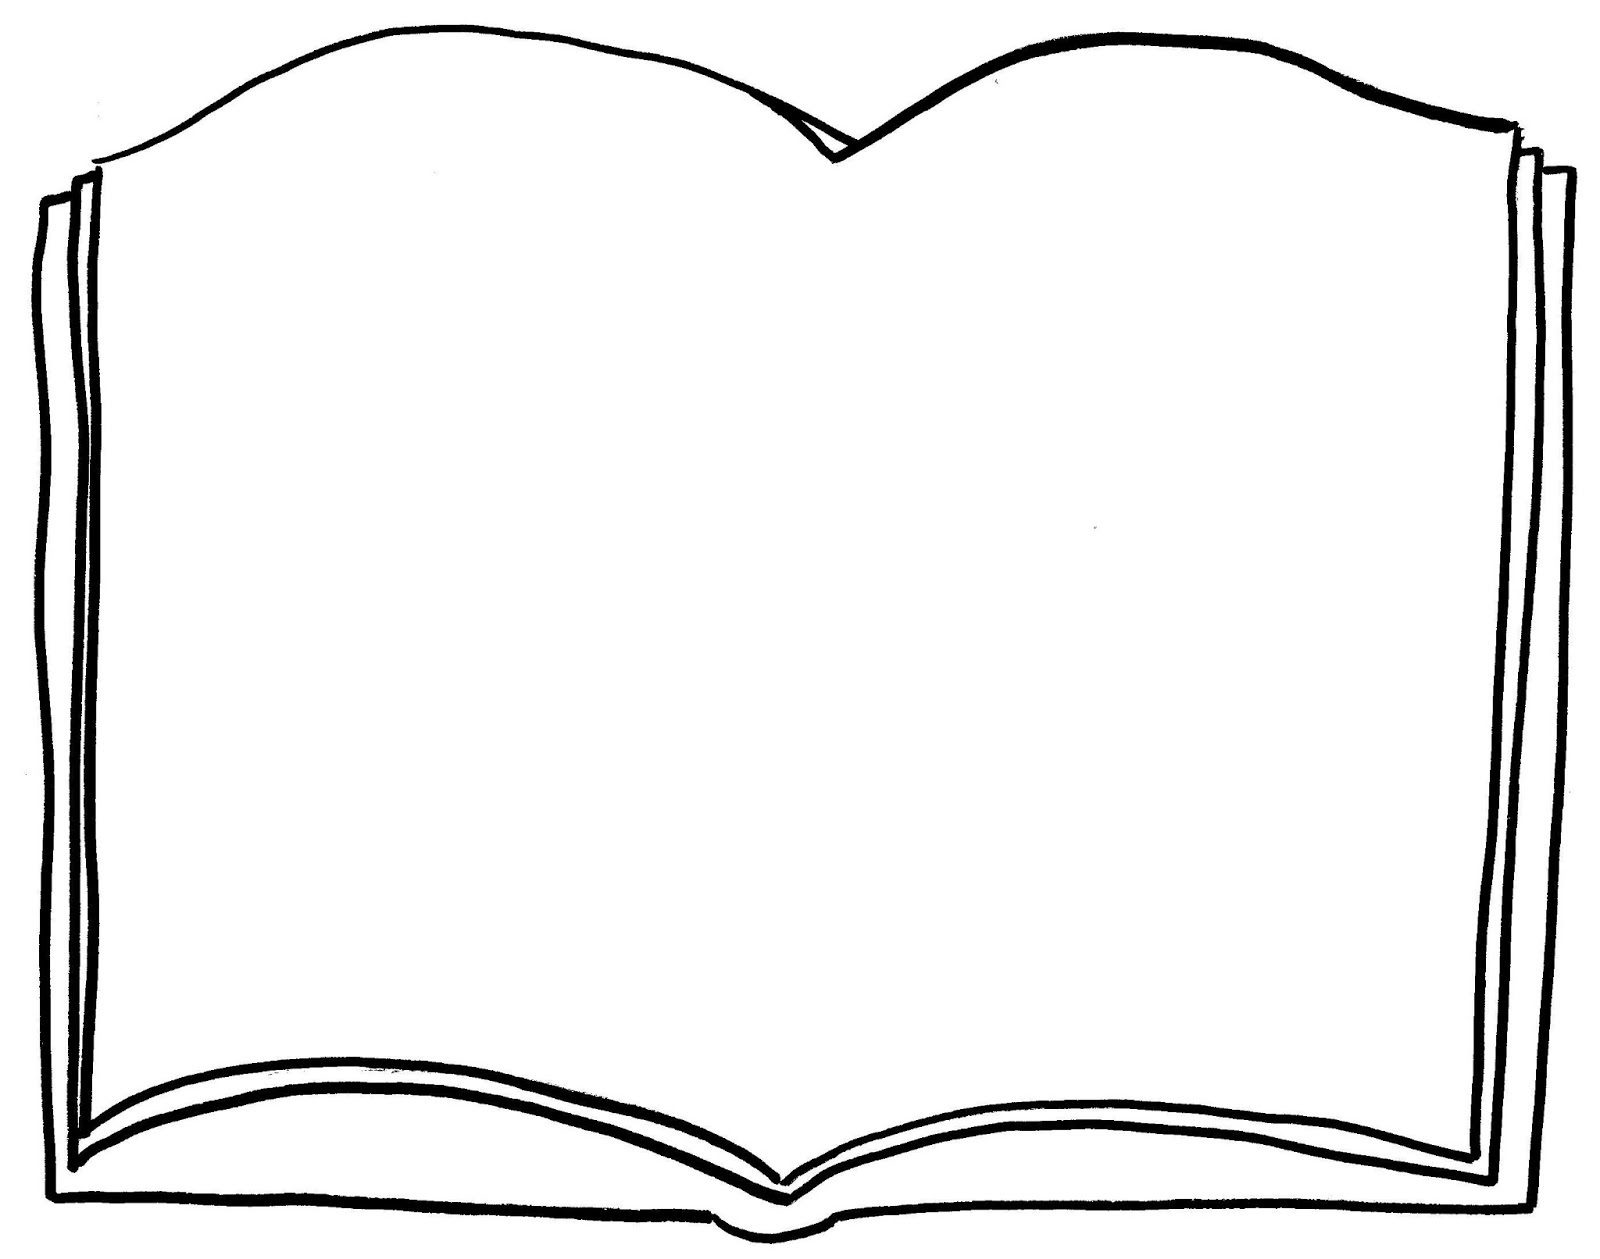 Coloring a Book Blank